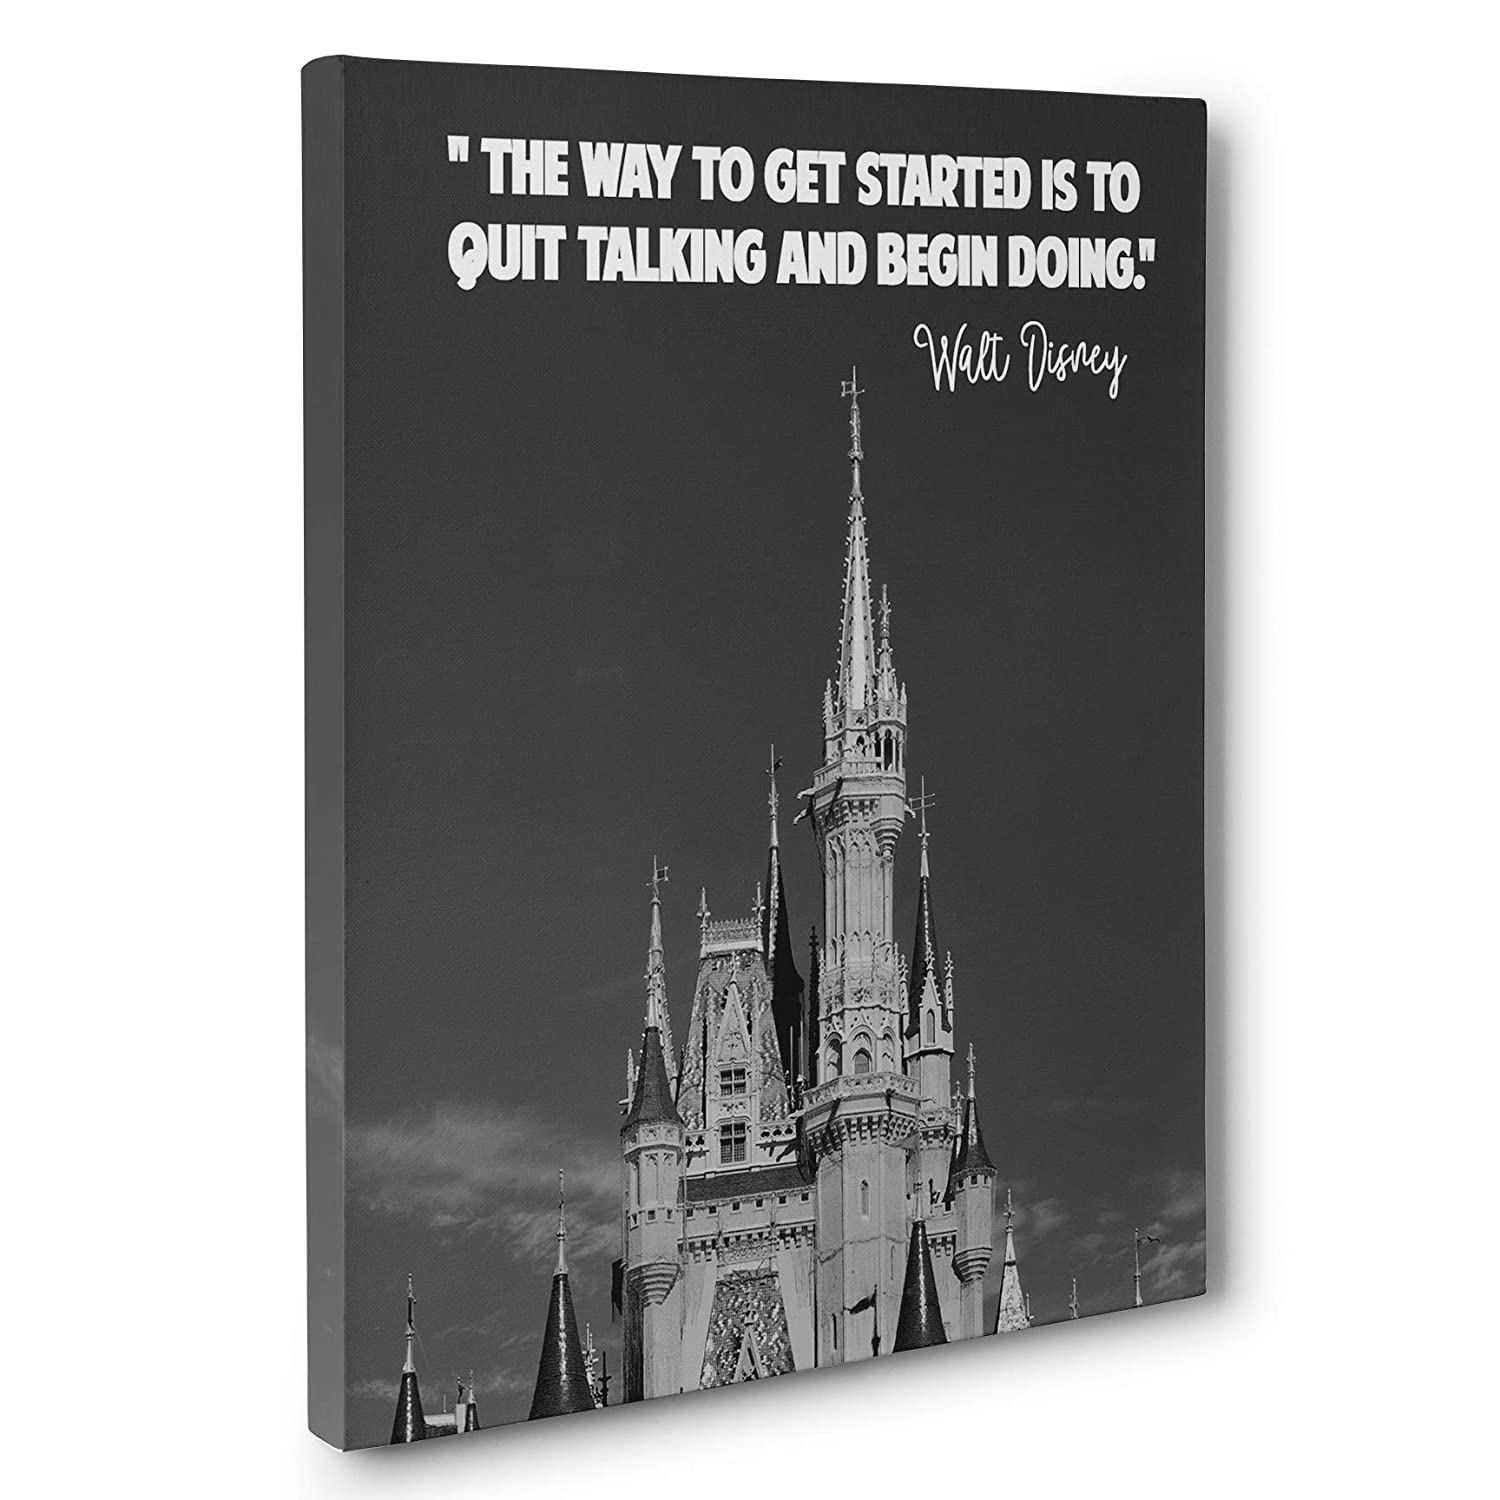 Walt Max 54% OFF Low price Disney Motivational Quote Art Wall Canvas